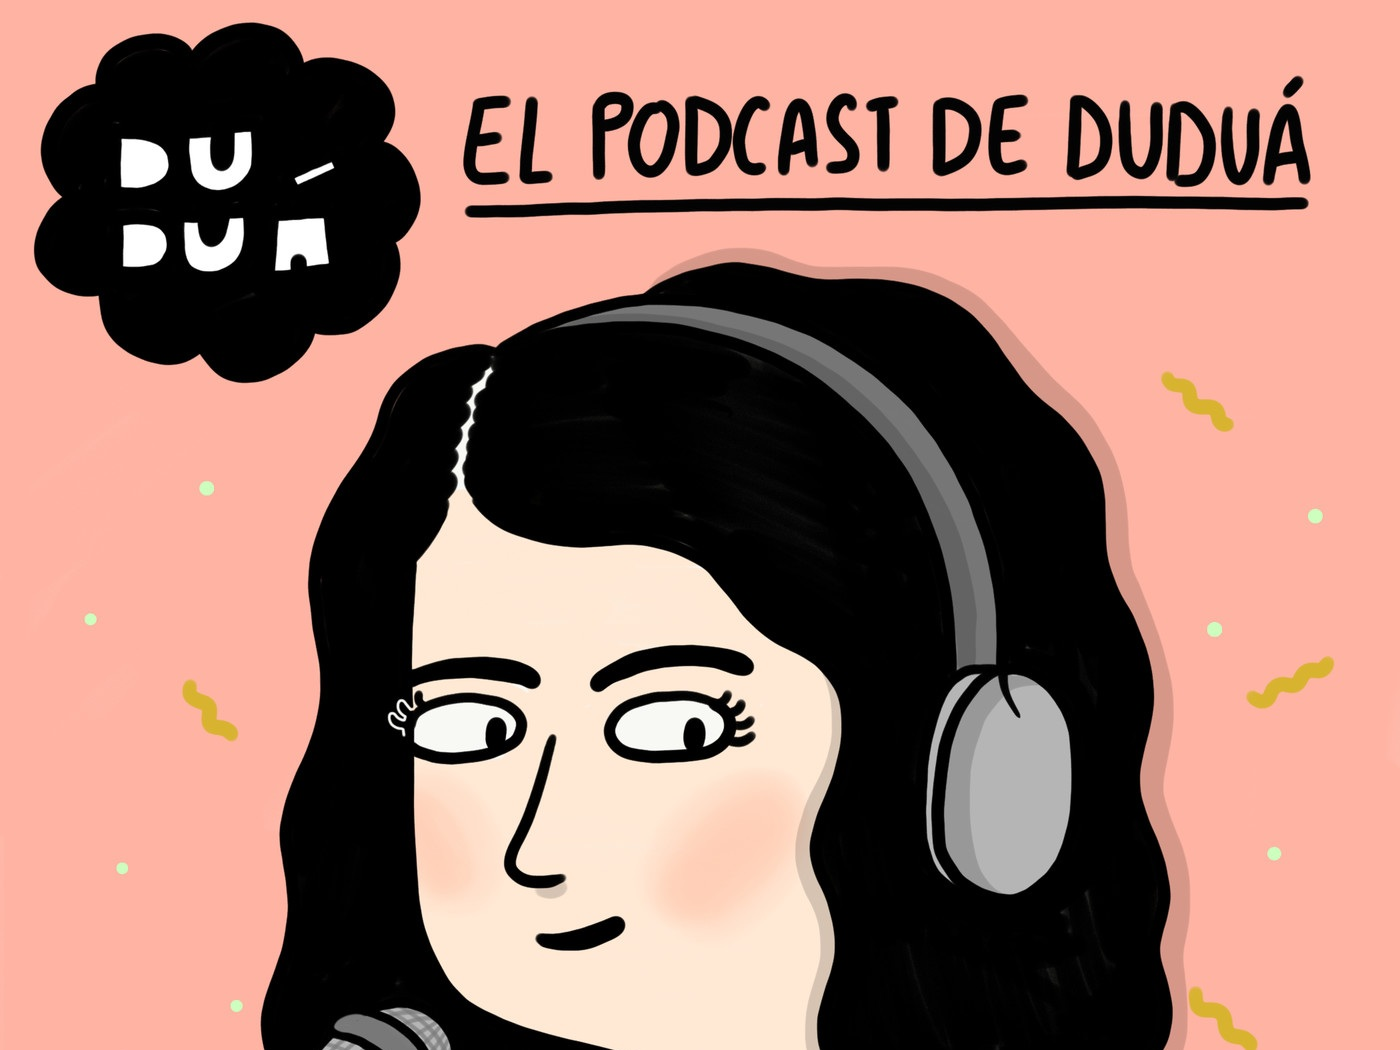 Podcast interview with Alicia from Dudua, Barcelona 2018. -